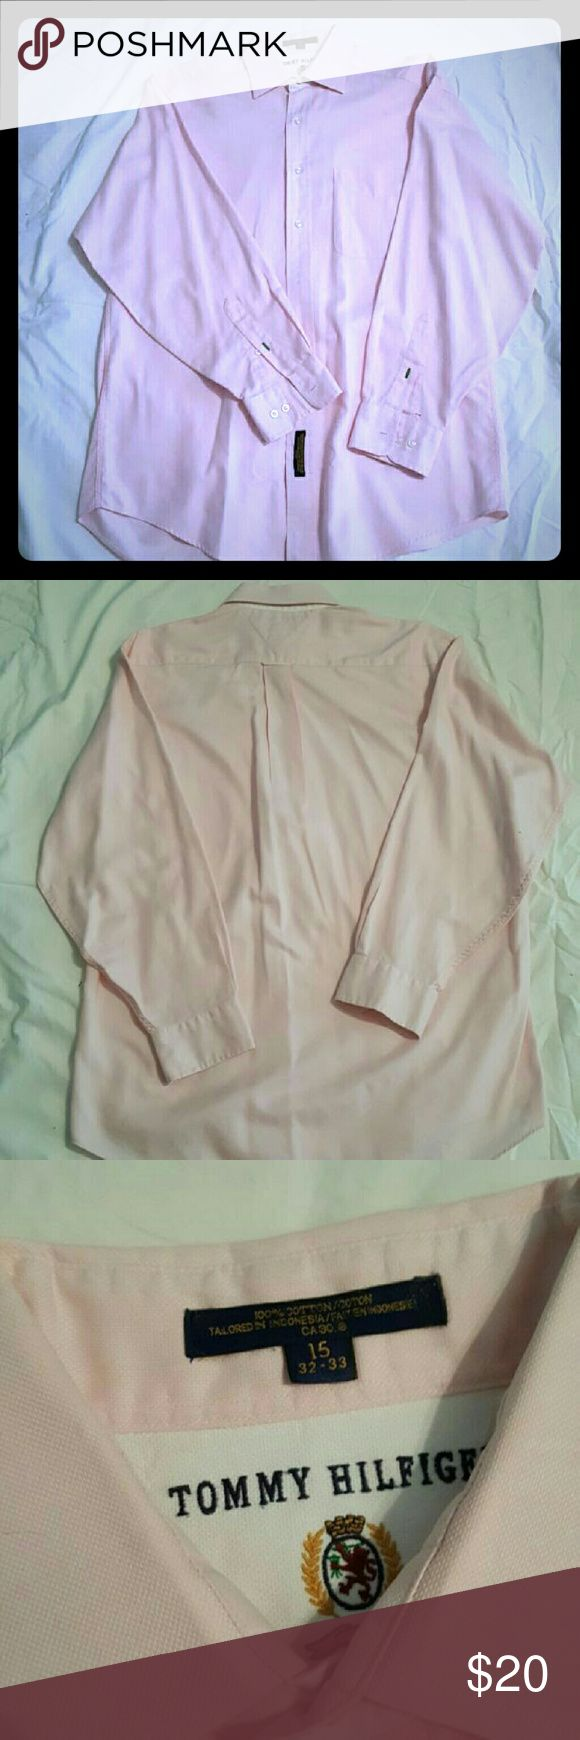 Tommy Hilfiger Men's Button Down Back to School SpecialMens light pink button down shirt. In great condition.  Has only been dry cleaned, never machine washed. Absolutely no stains. Size is 15/32-33. Smoke free home. PRICE IS FIRM. See Back to School Sale post for sale details.   Smoke free home. No trades. Open to reasonable offers unless marked as firm.  Happy Poshing!!  Tommy Hilfiger Shirts Casual Button Down Shirts